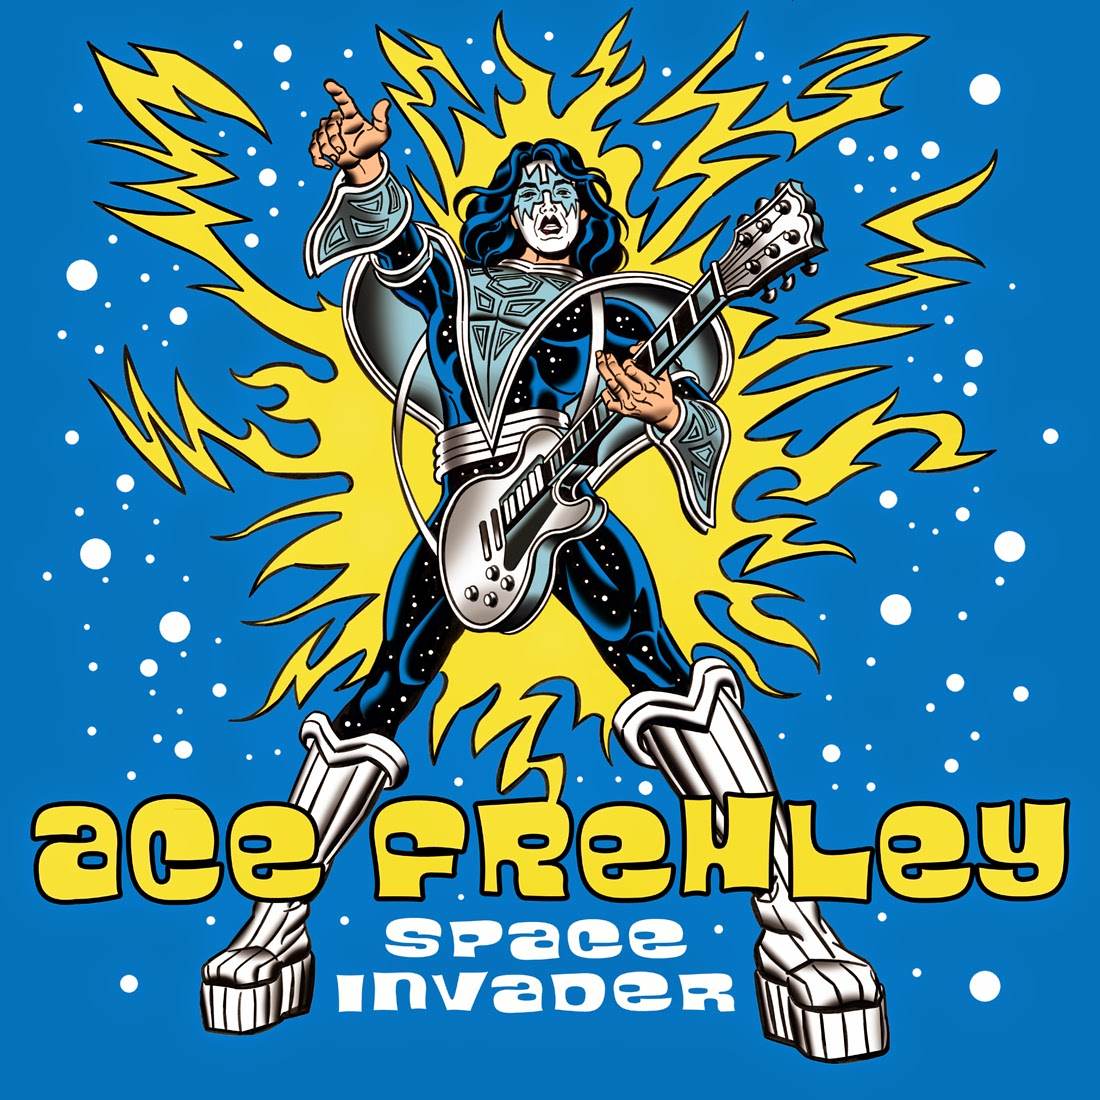 ACE FREHLEY. HILO OFICIAL. - Página 3 Ace+frehley+space+invader+cd